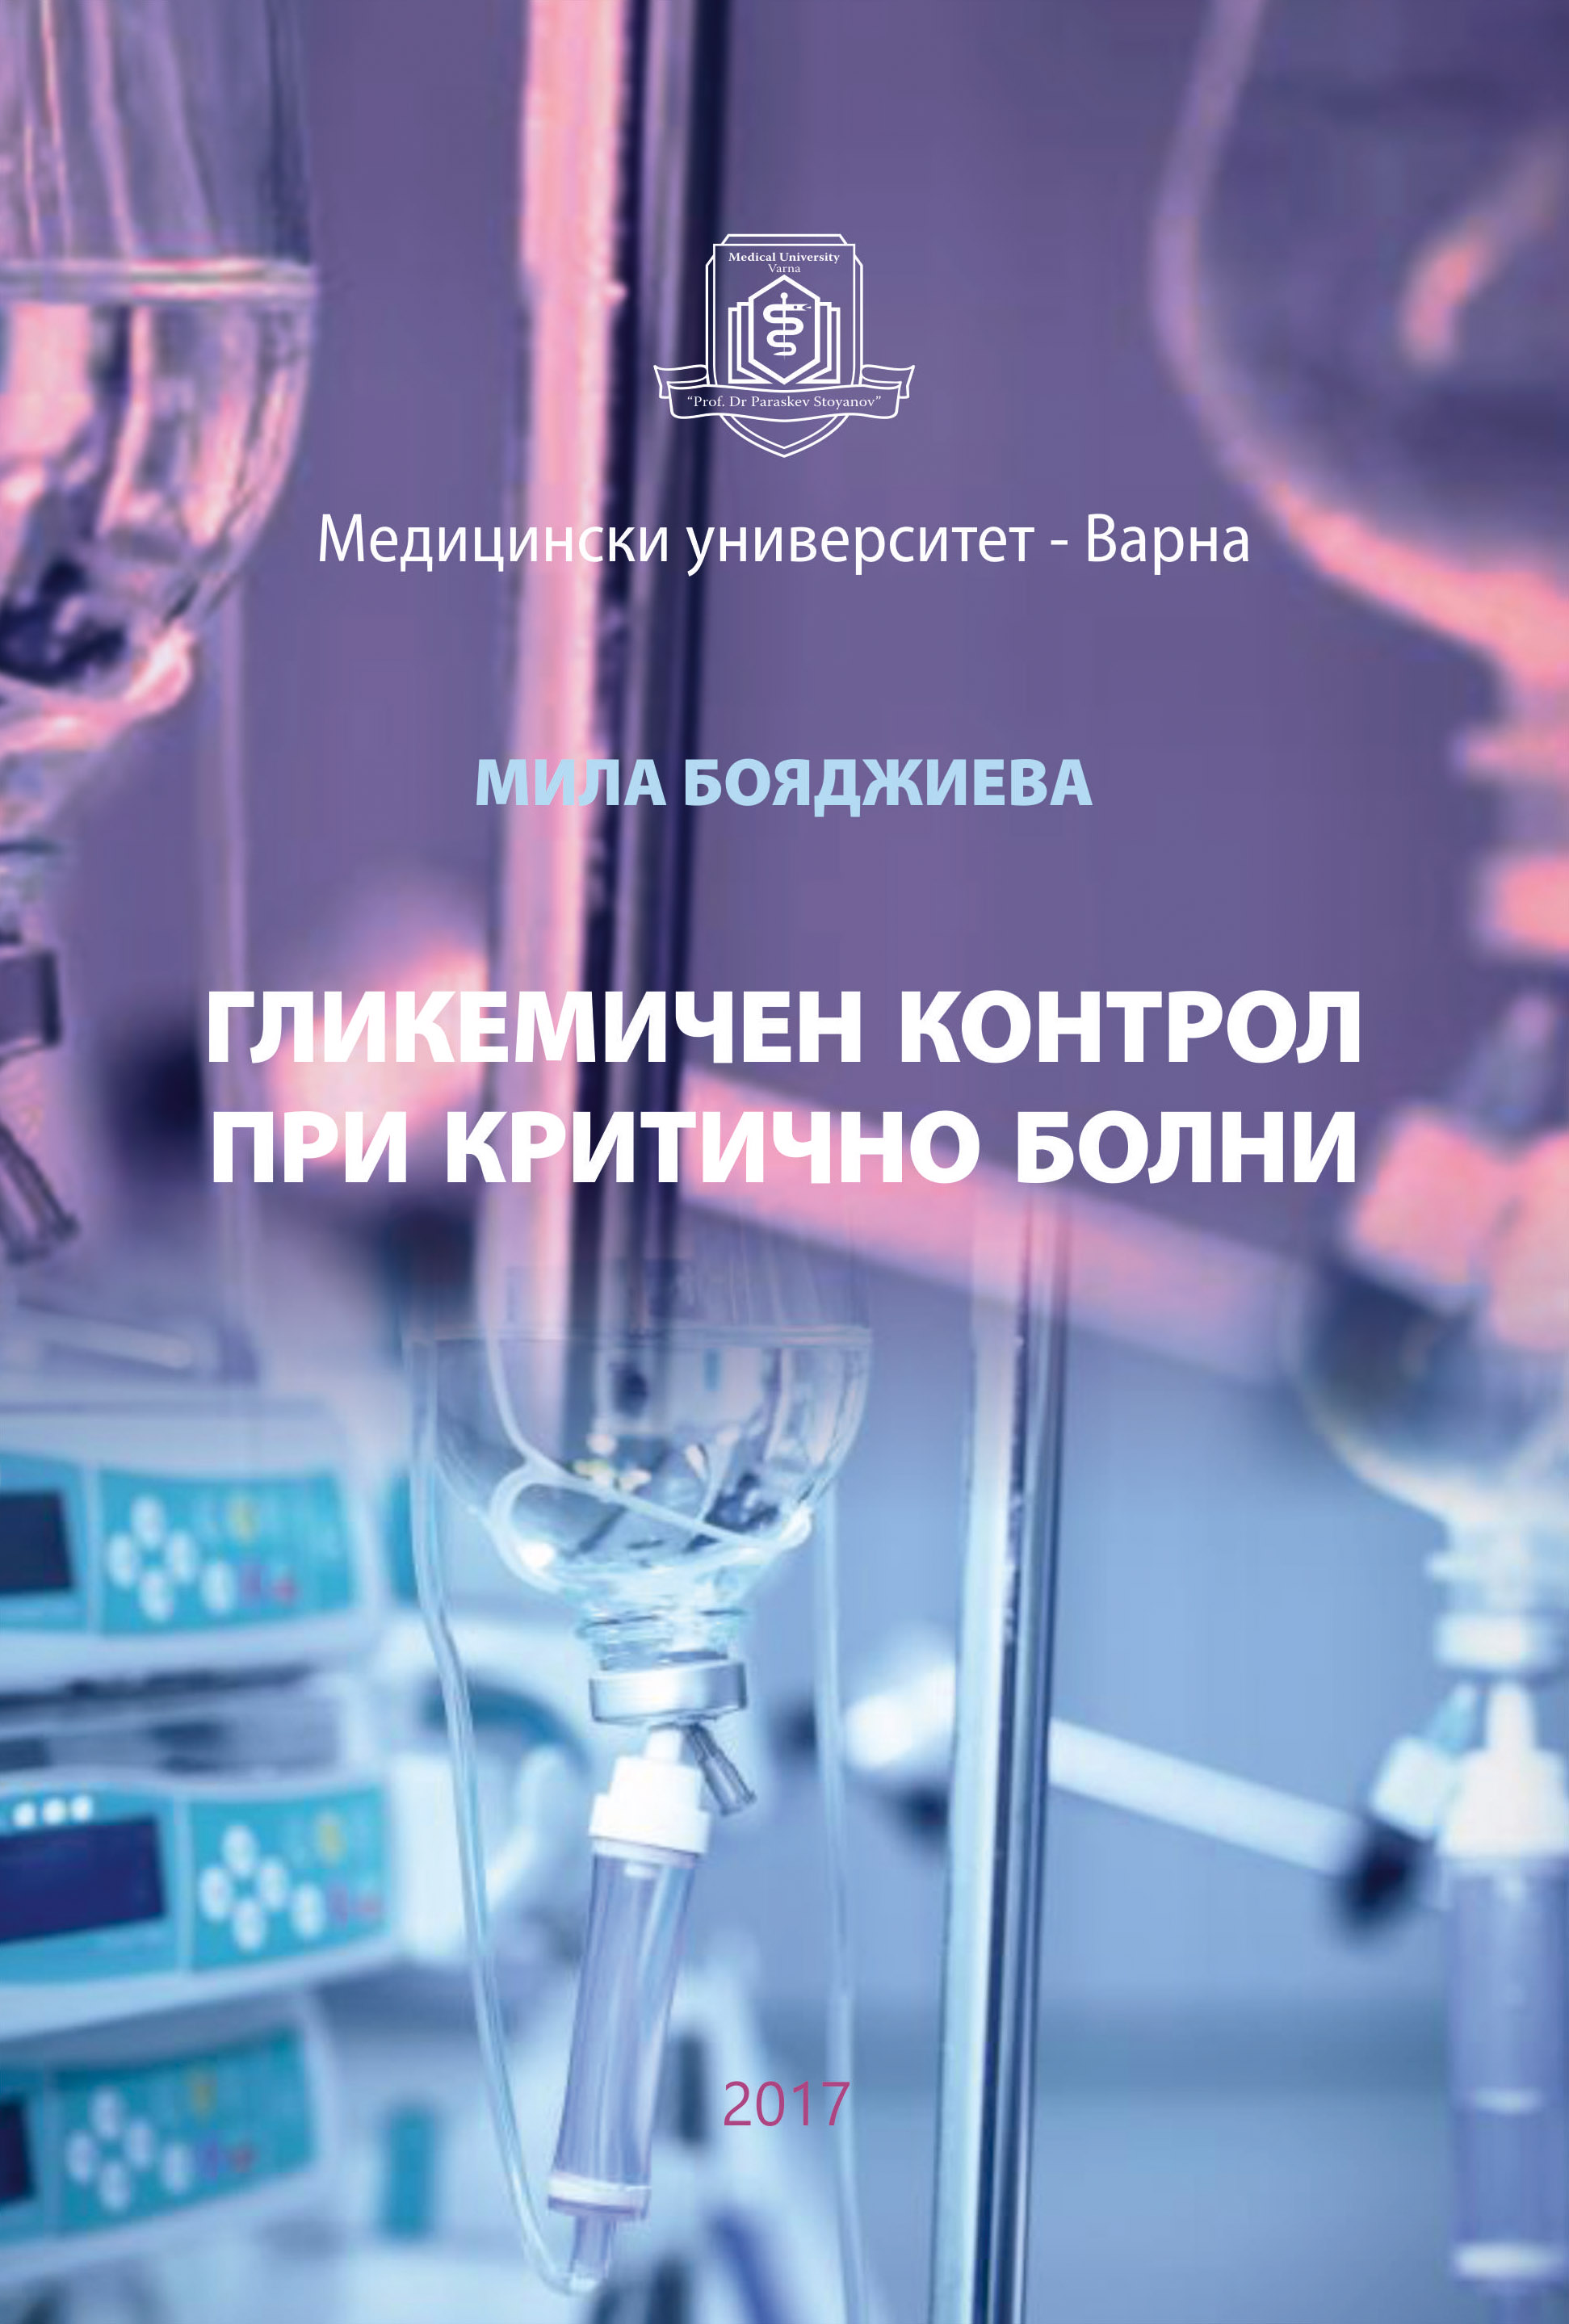 The Book Glycemic Control in Critically Ill Patients by Mila Boyazhieva Has Been Issued